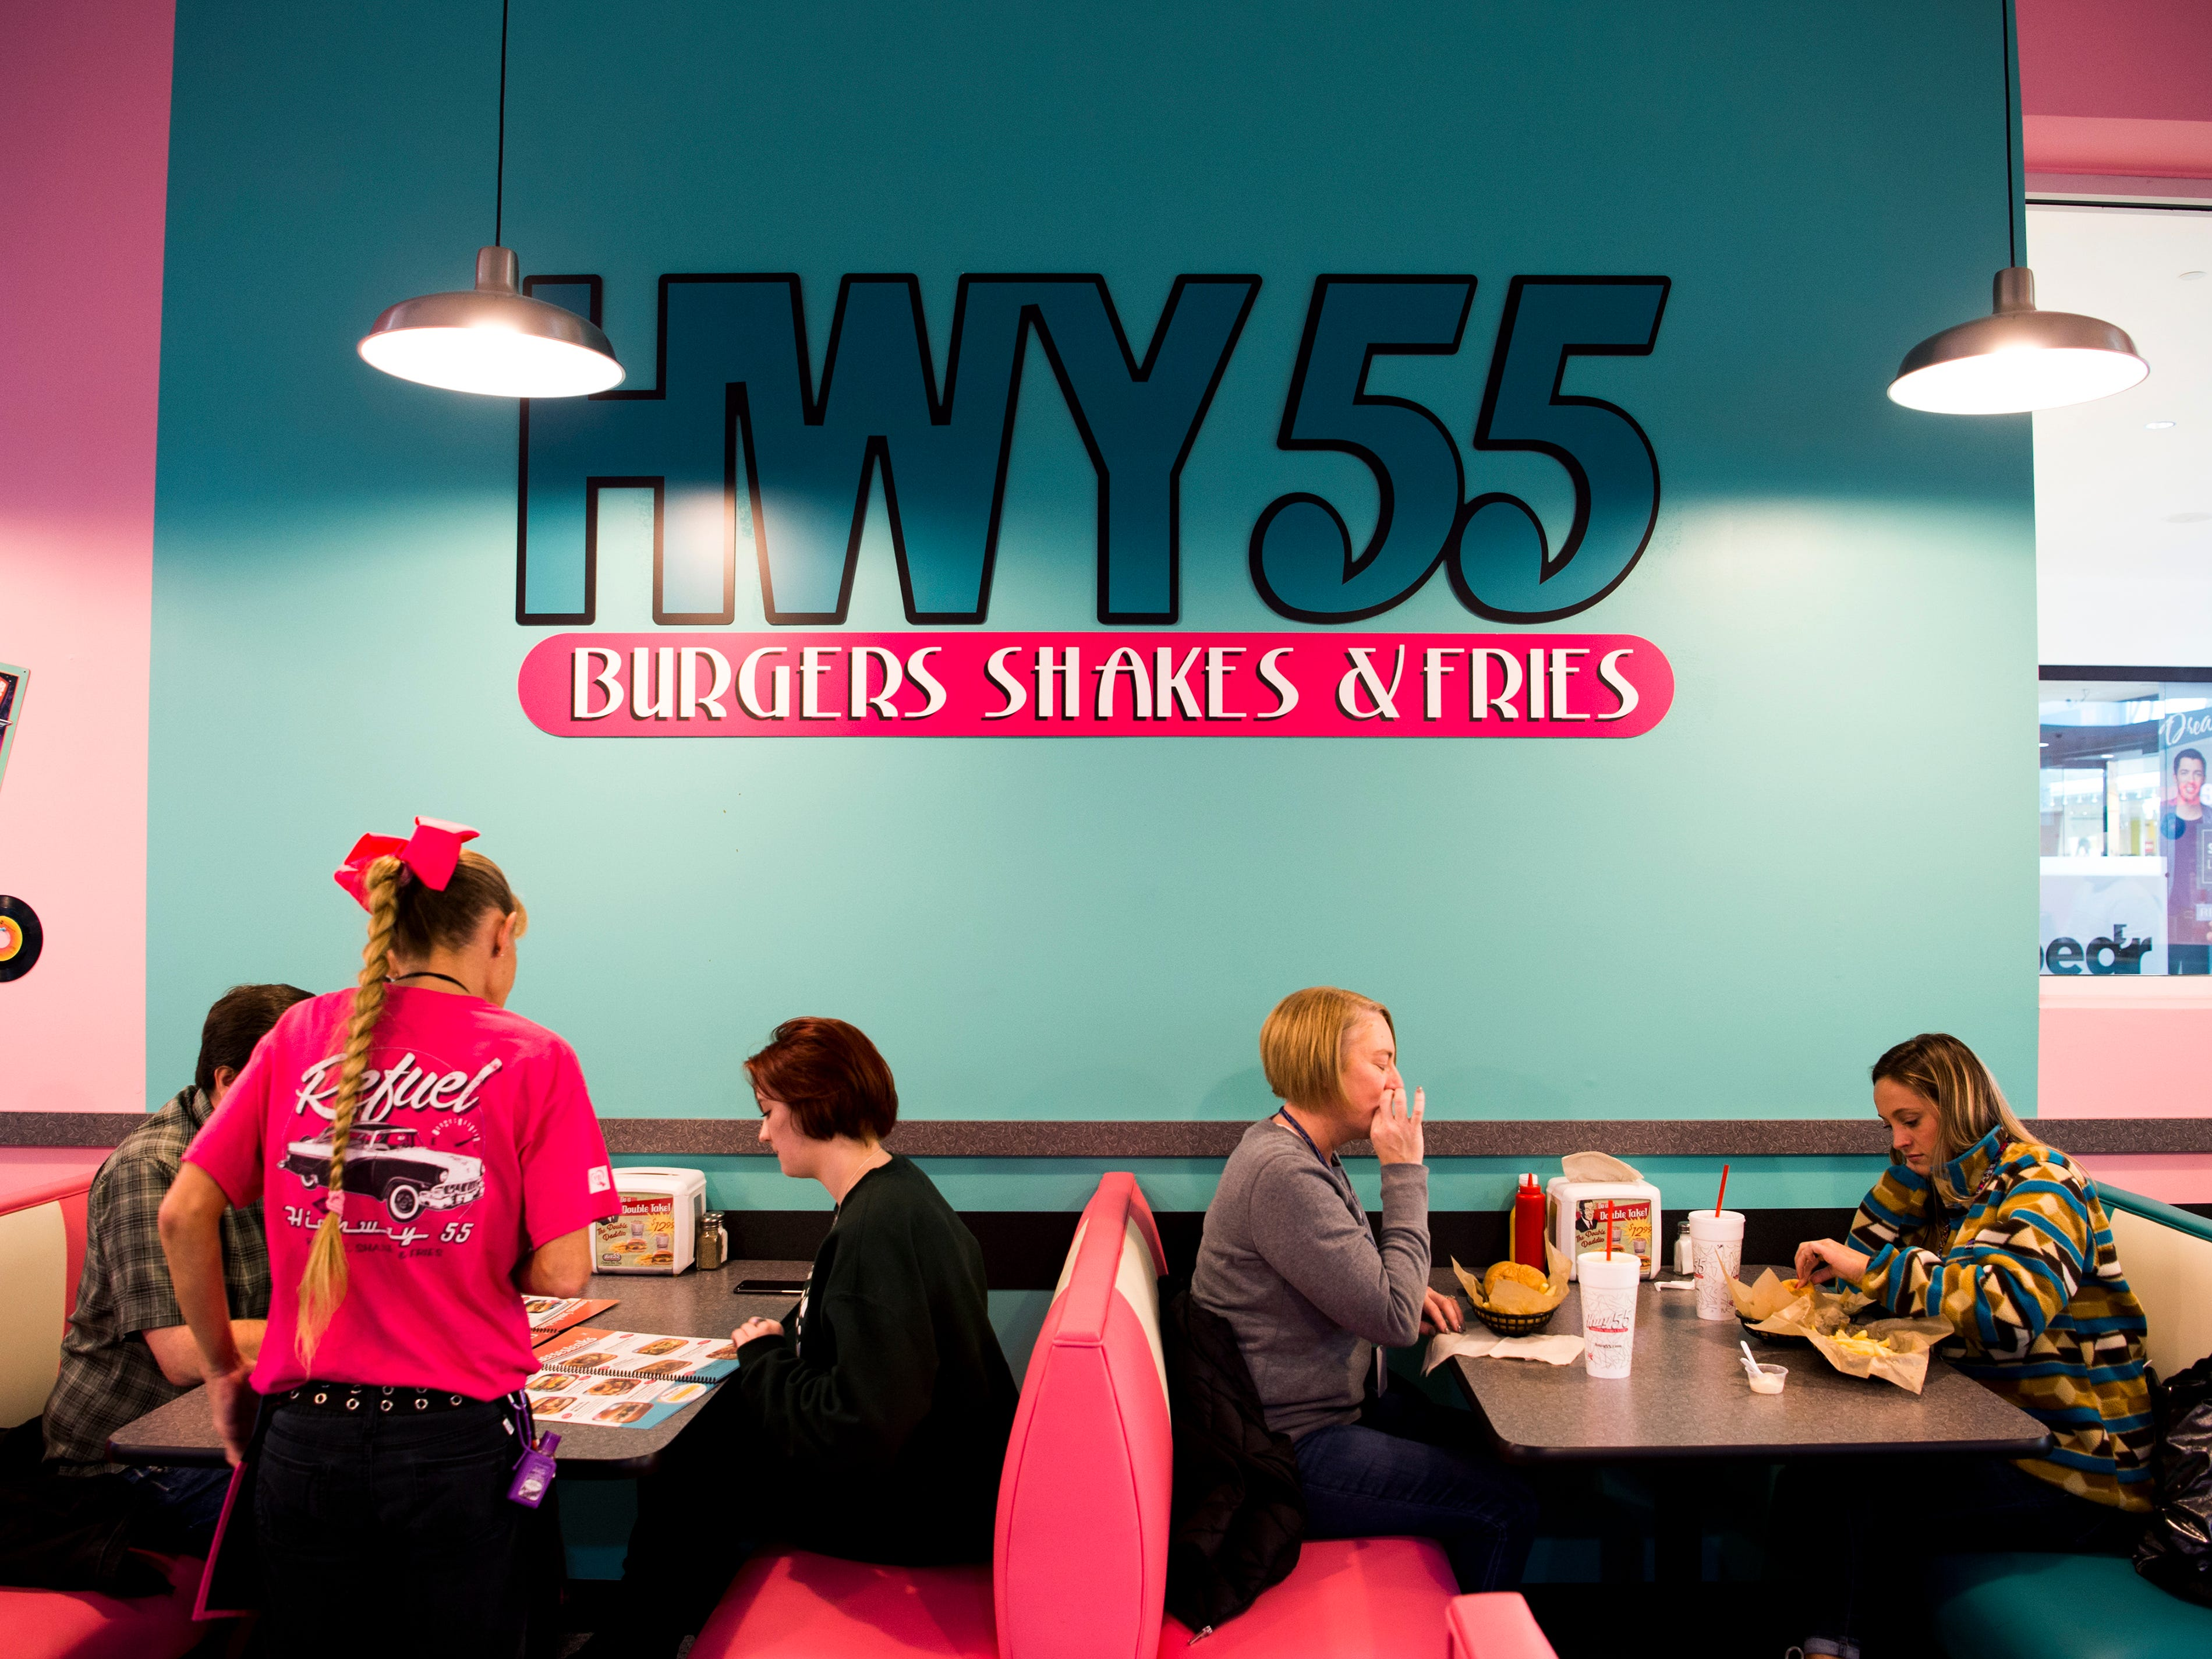 Customers eat lunch at the new Hwy 55 Burgers, Shakes & Fries at West Town Mall in Knoxville on Monday, Jan. 28, 2019.